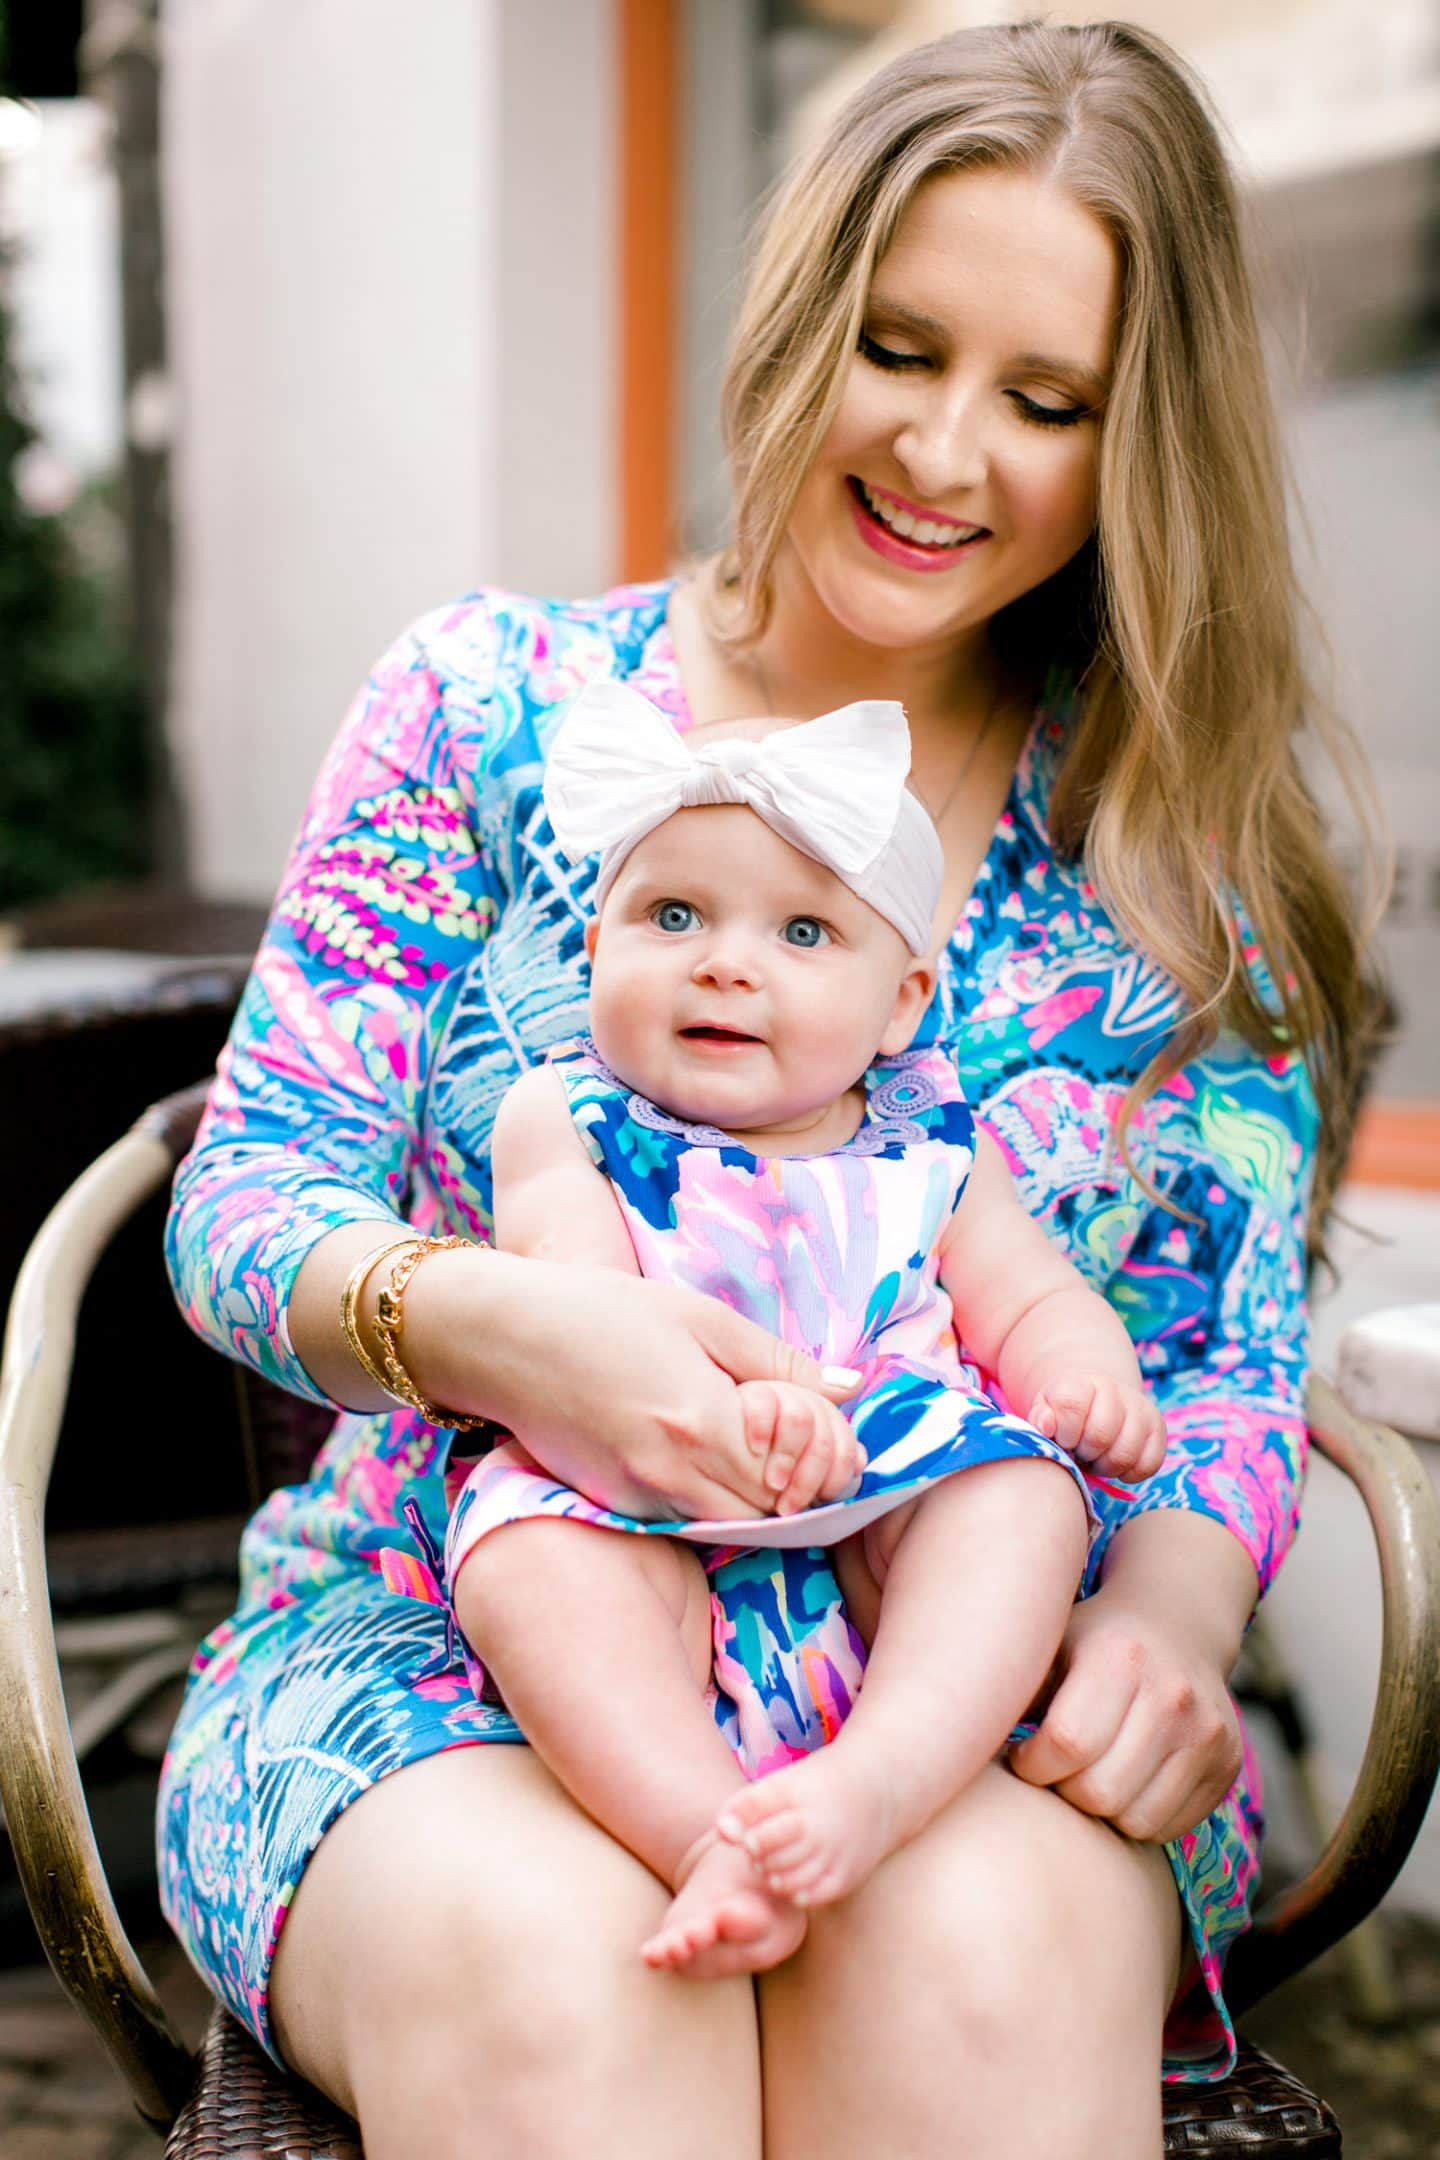 Lilly Pulitzer Mommy & Me Outfit